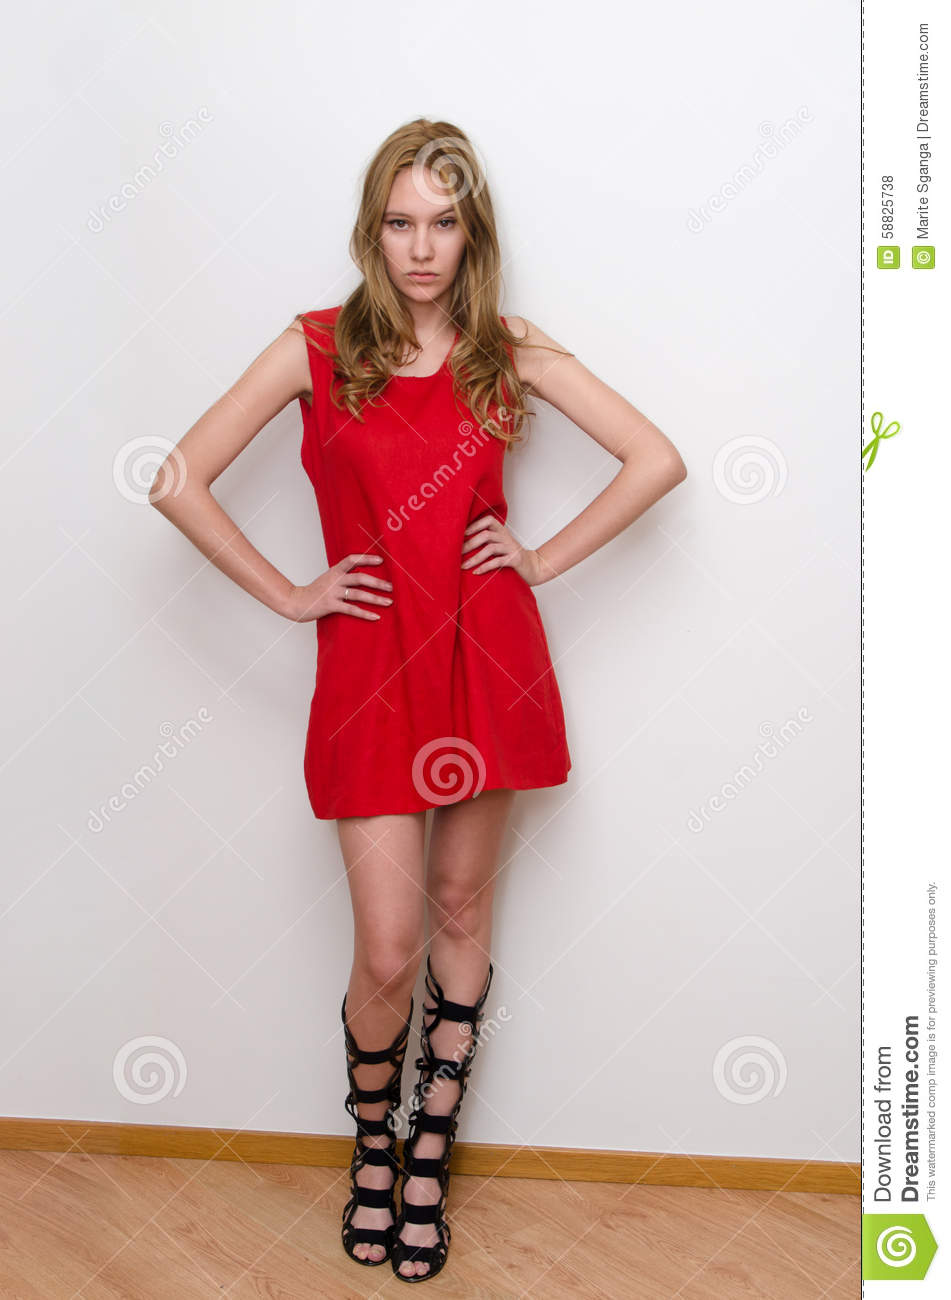 5b1ee45ad46d Fashion Portrait Of Gorgeous Young Woman Stock Photo - Image of girl ...